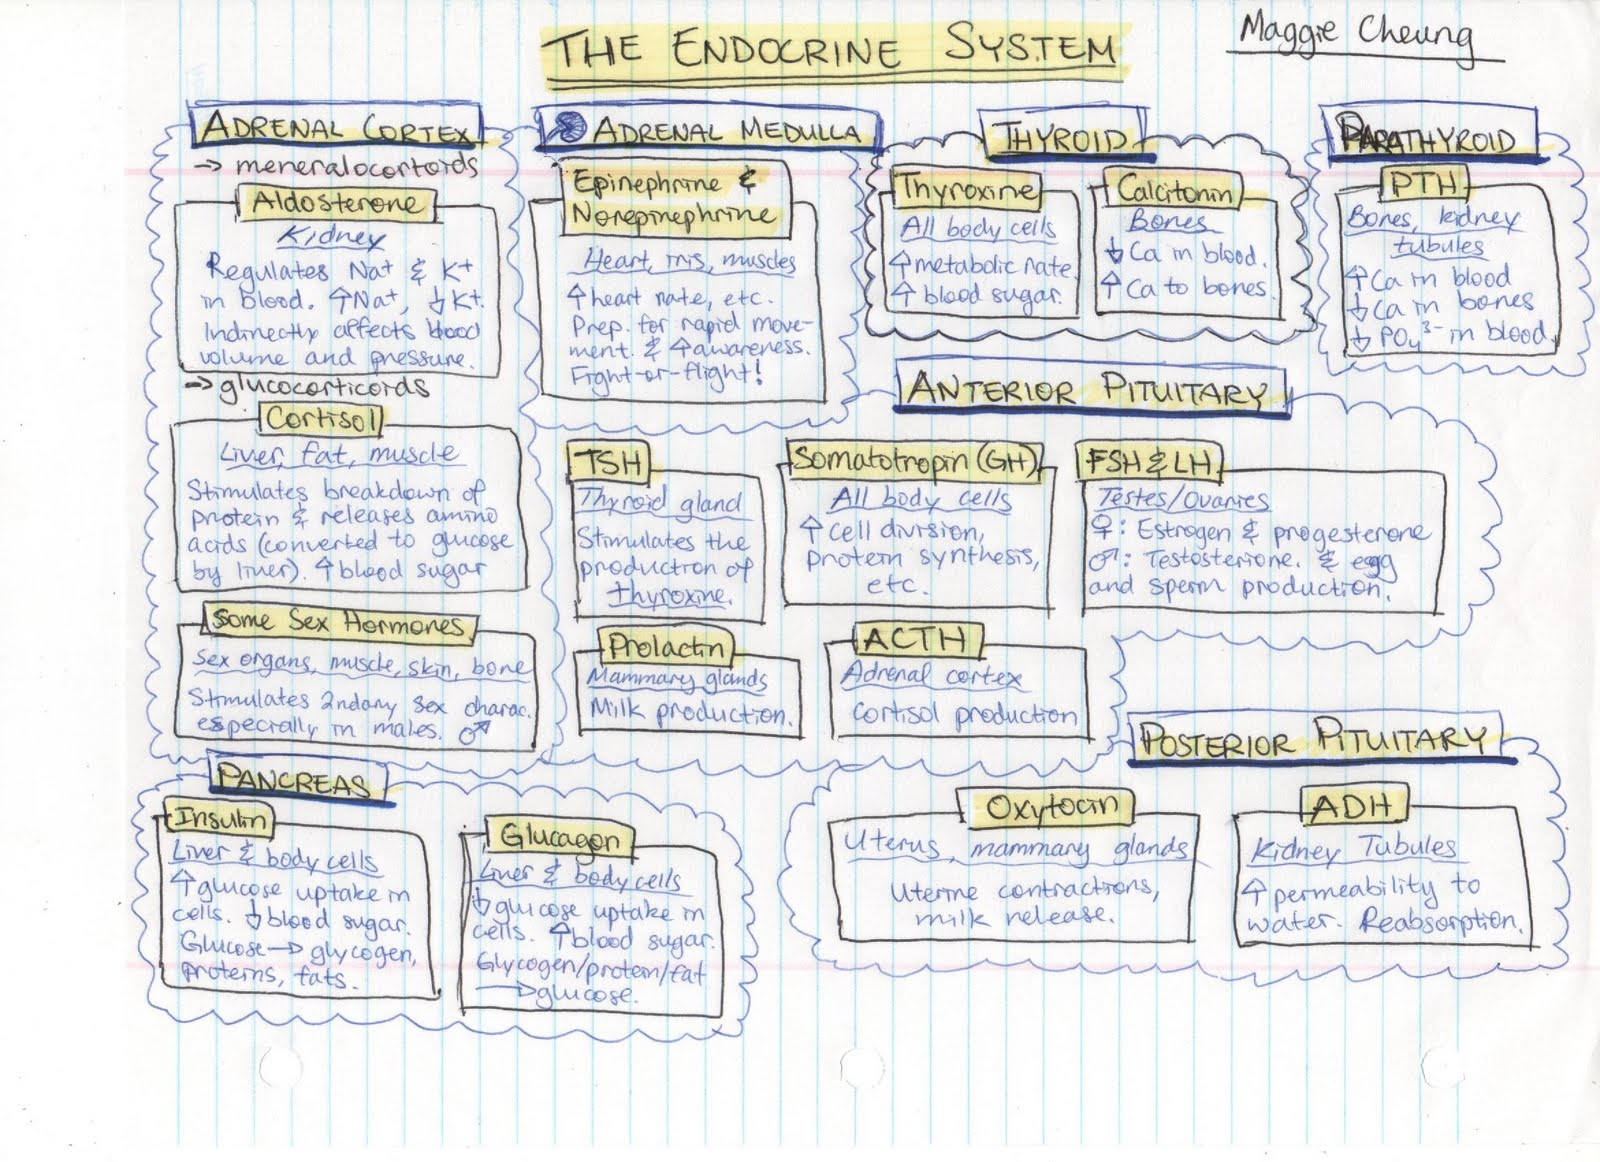 Sbi4u6 01 Chapter 8 Notes Endocrine System Chart